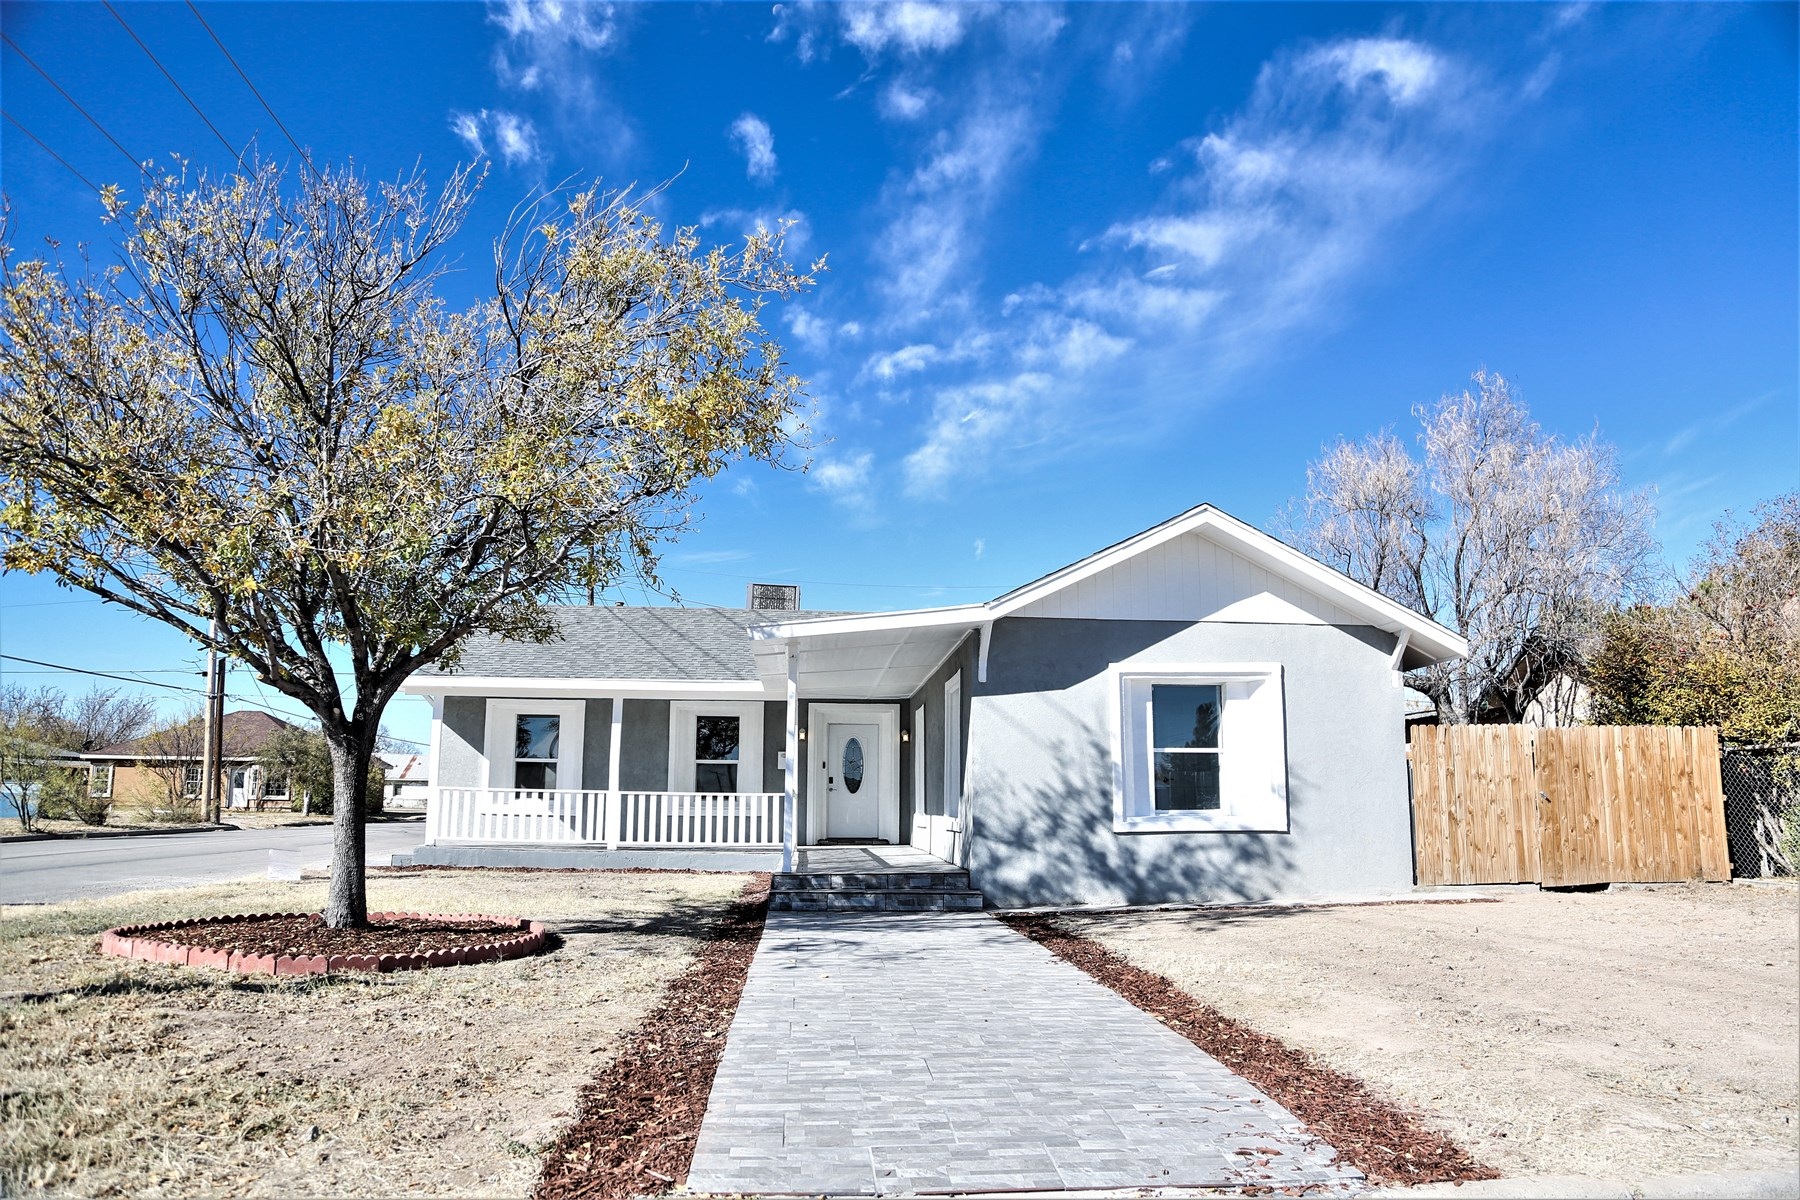 501 N TEXAS 4 BR 3 BA HOUSE IN FORT STOCKTON